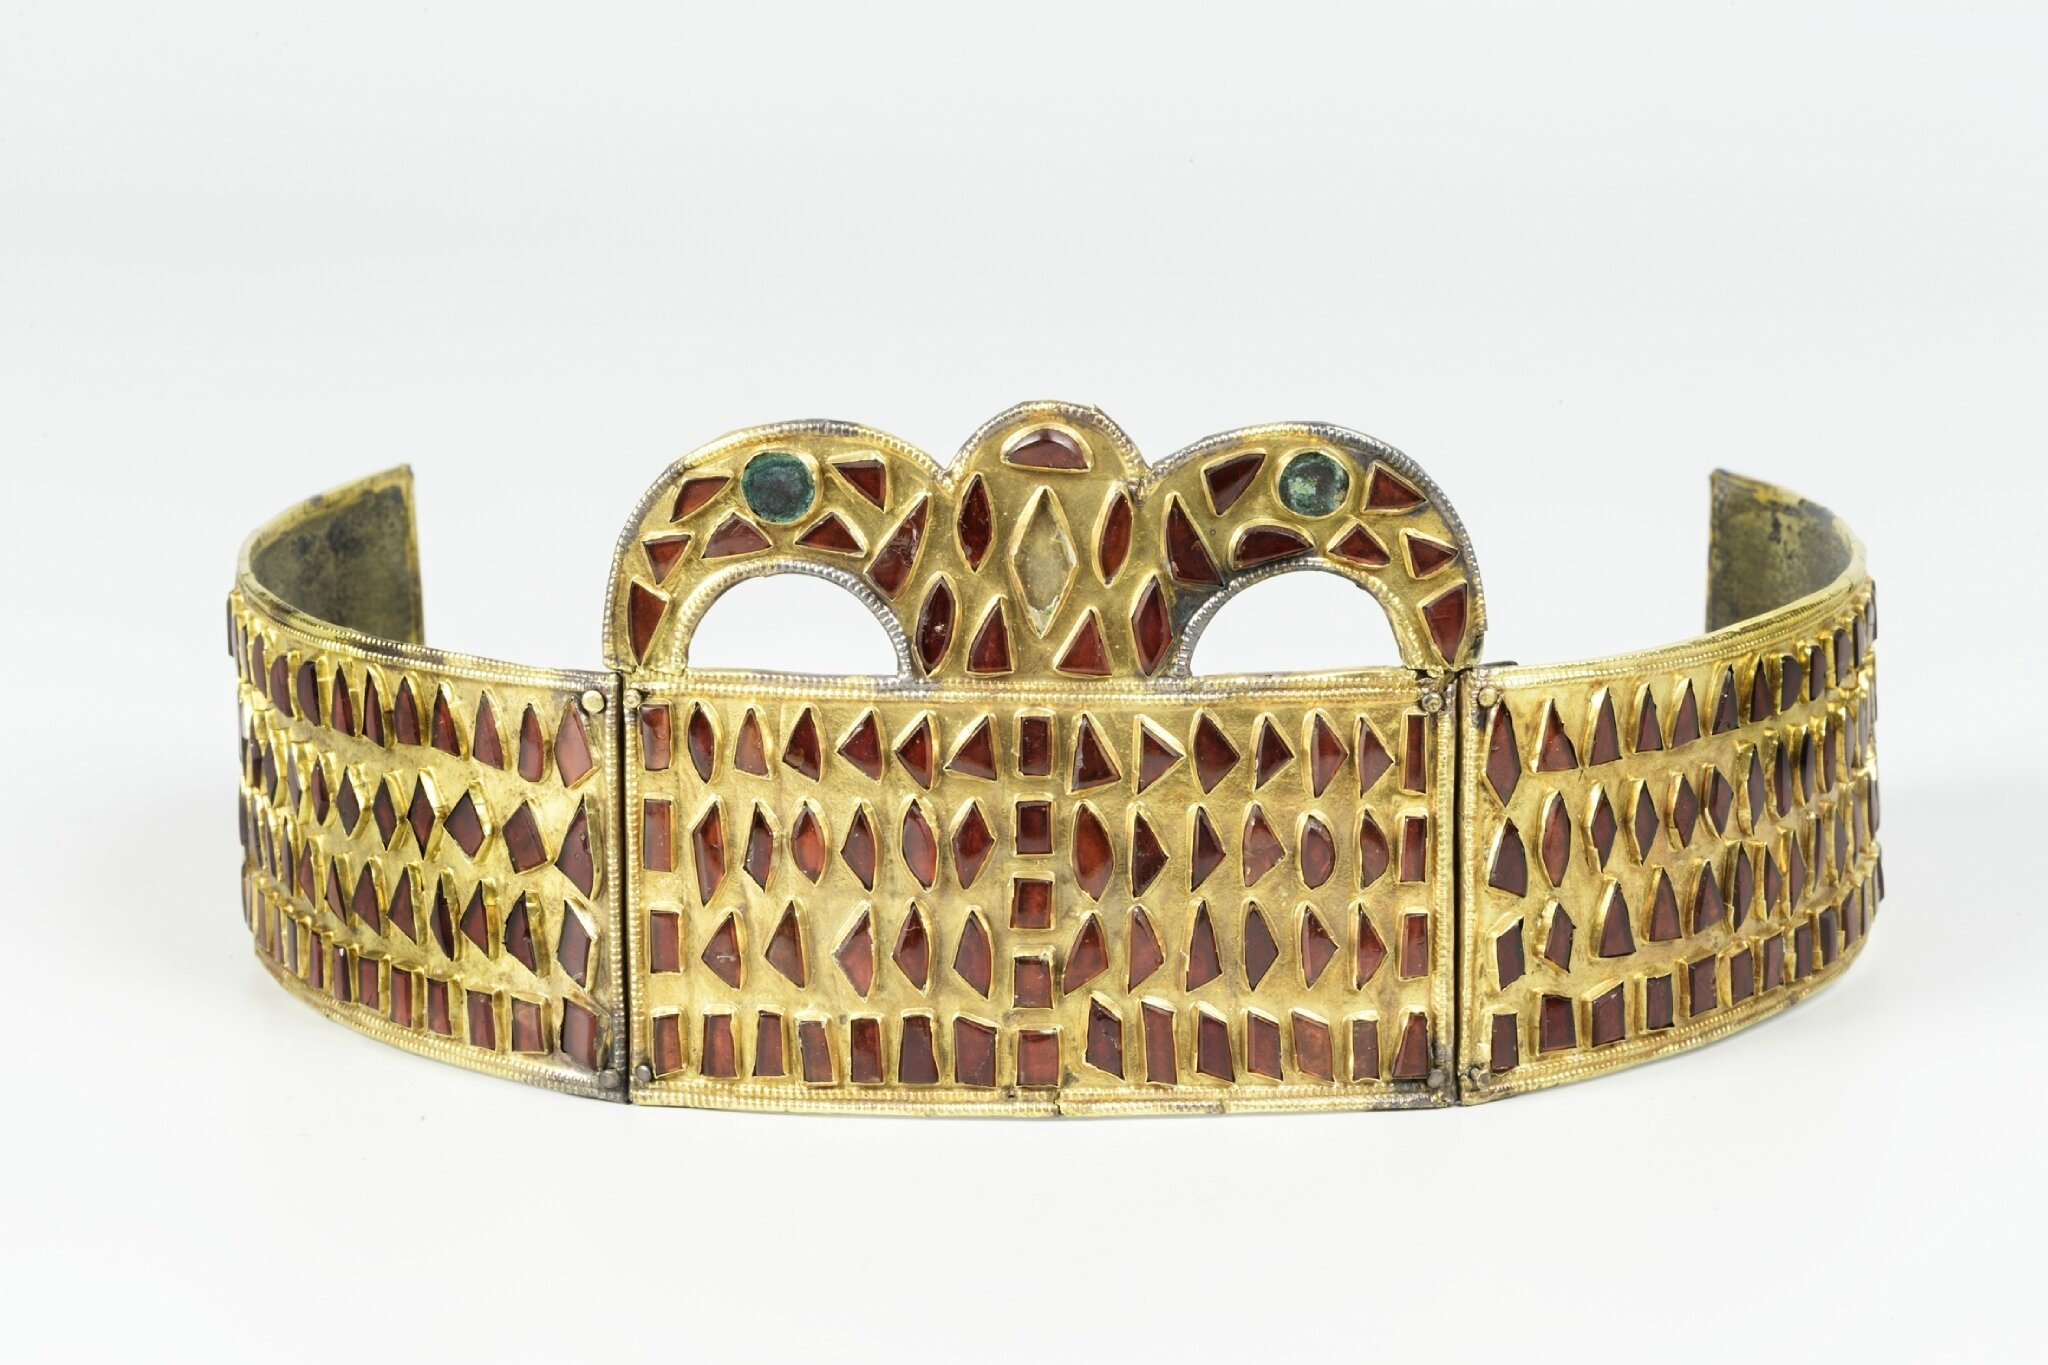 The Crown of Kerch and Other Treasures at Neues Museum